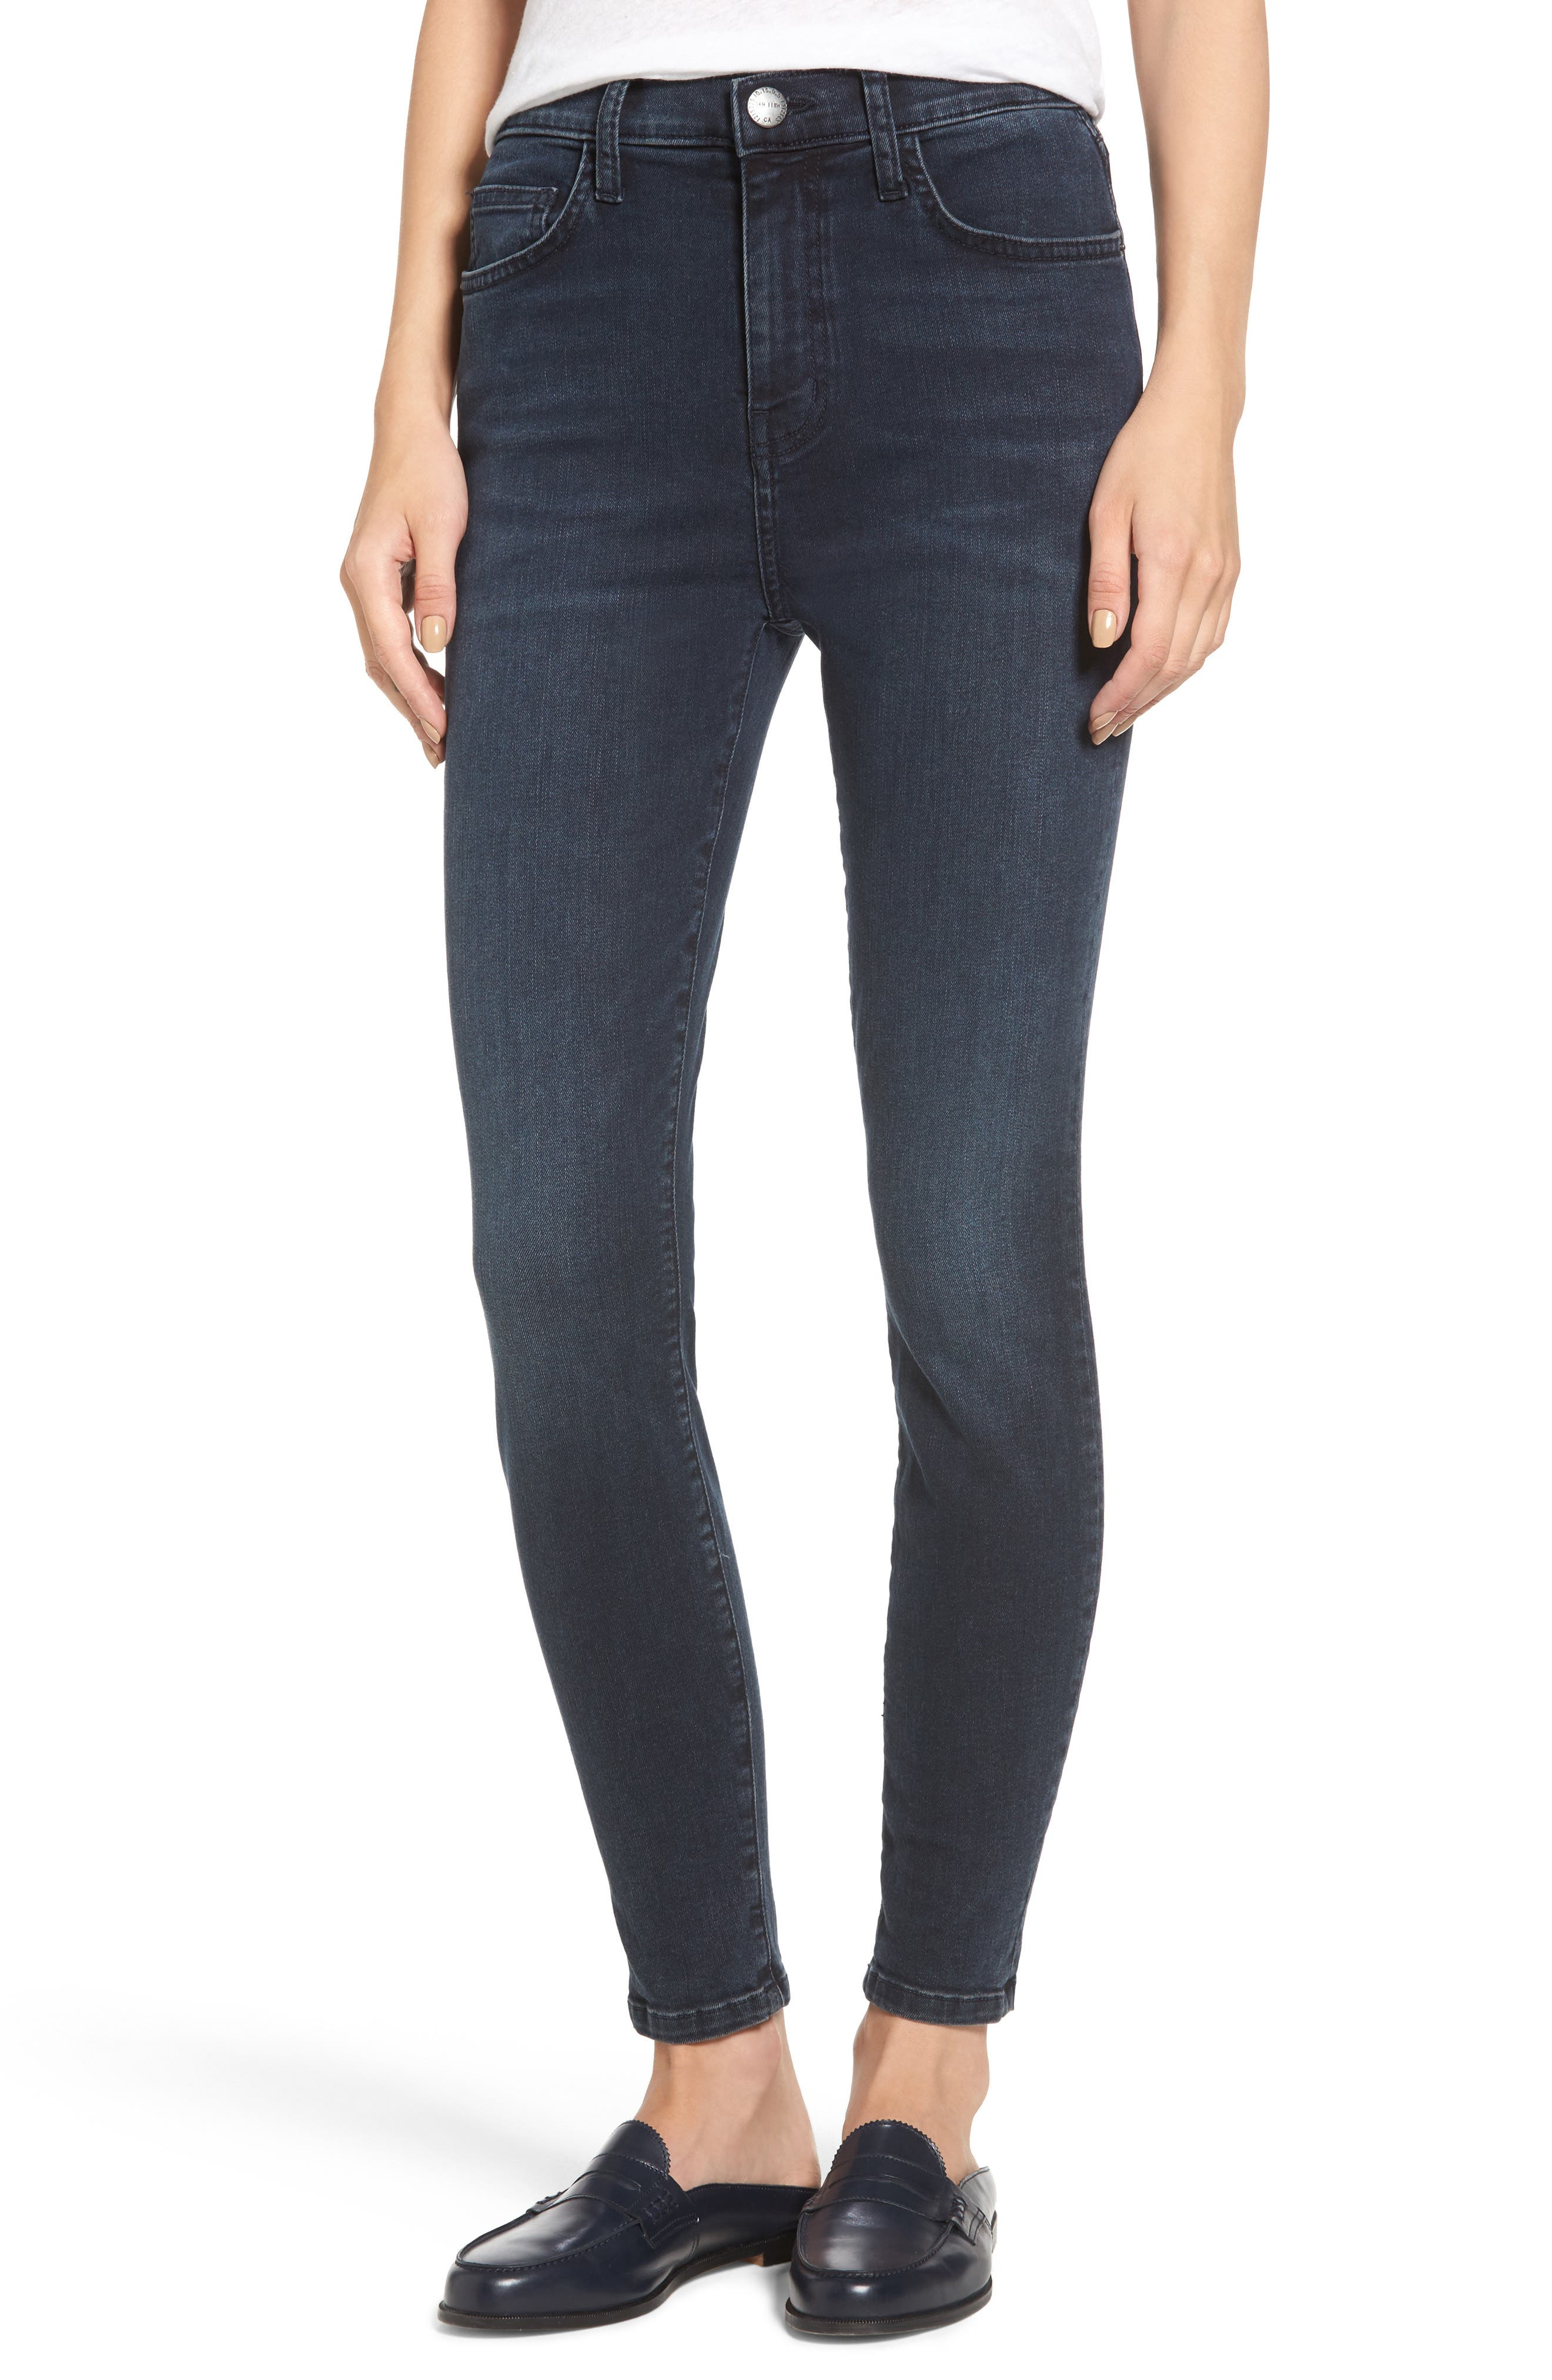 The Super High Waist Stiletto Ankle Skinny Jeans,                         Main,                         color, 467